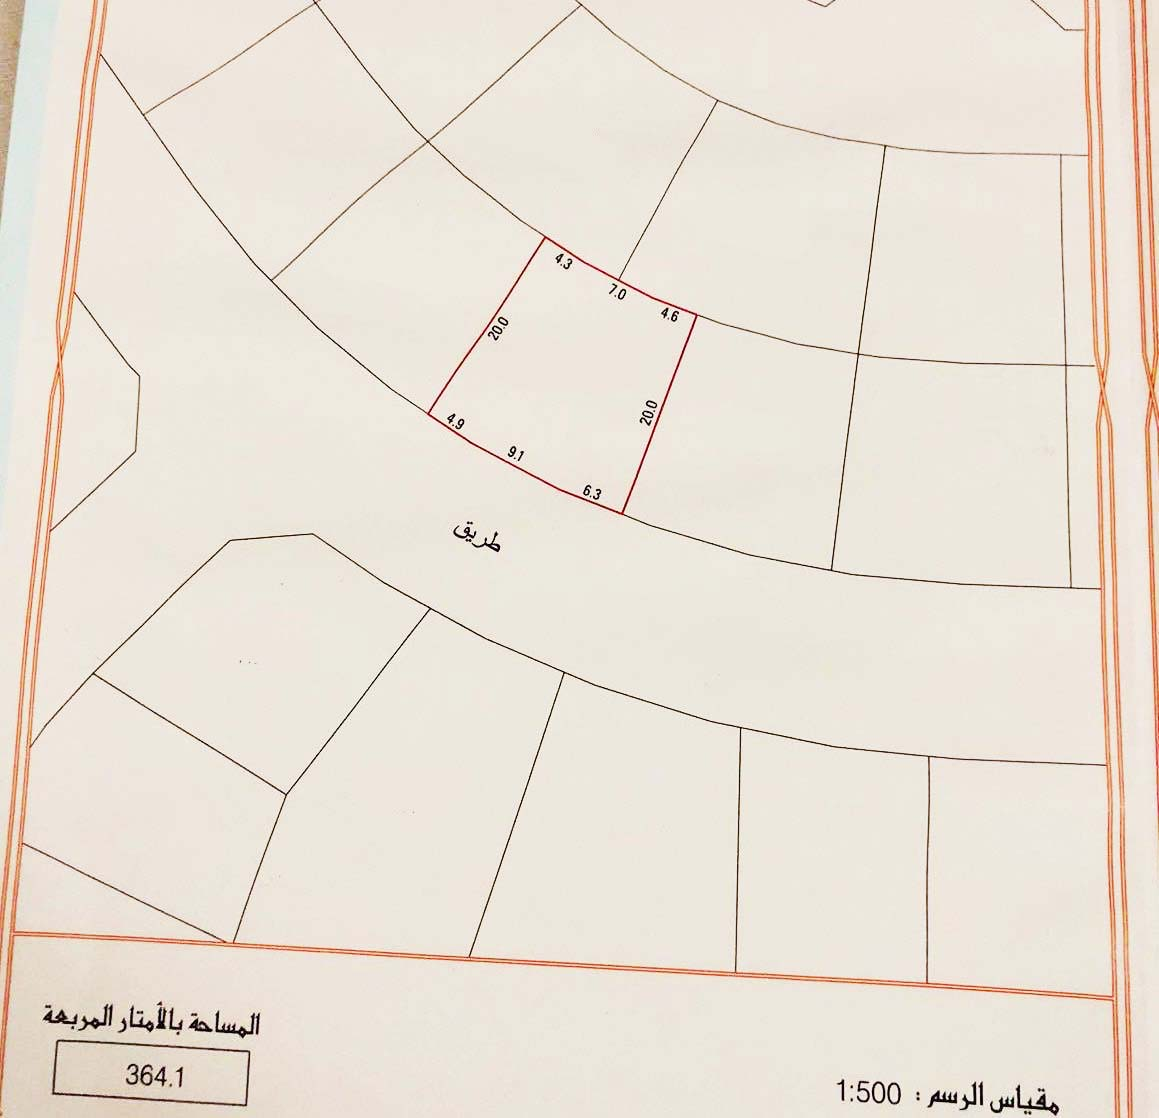 For sale residential land investment in Tubli. Ref: TUB-MH-040